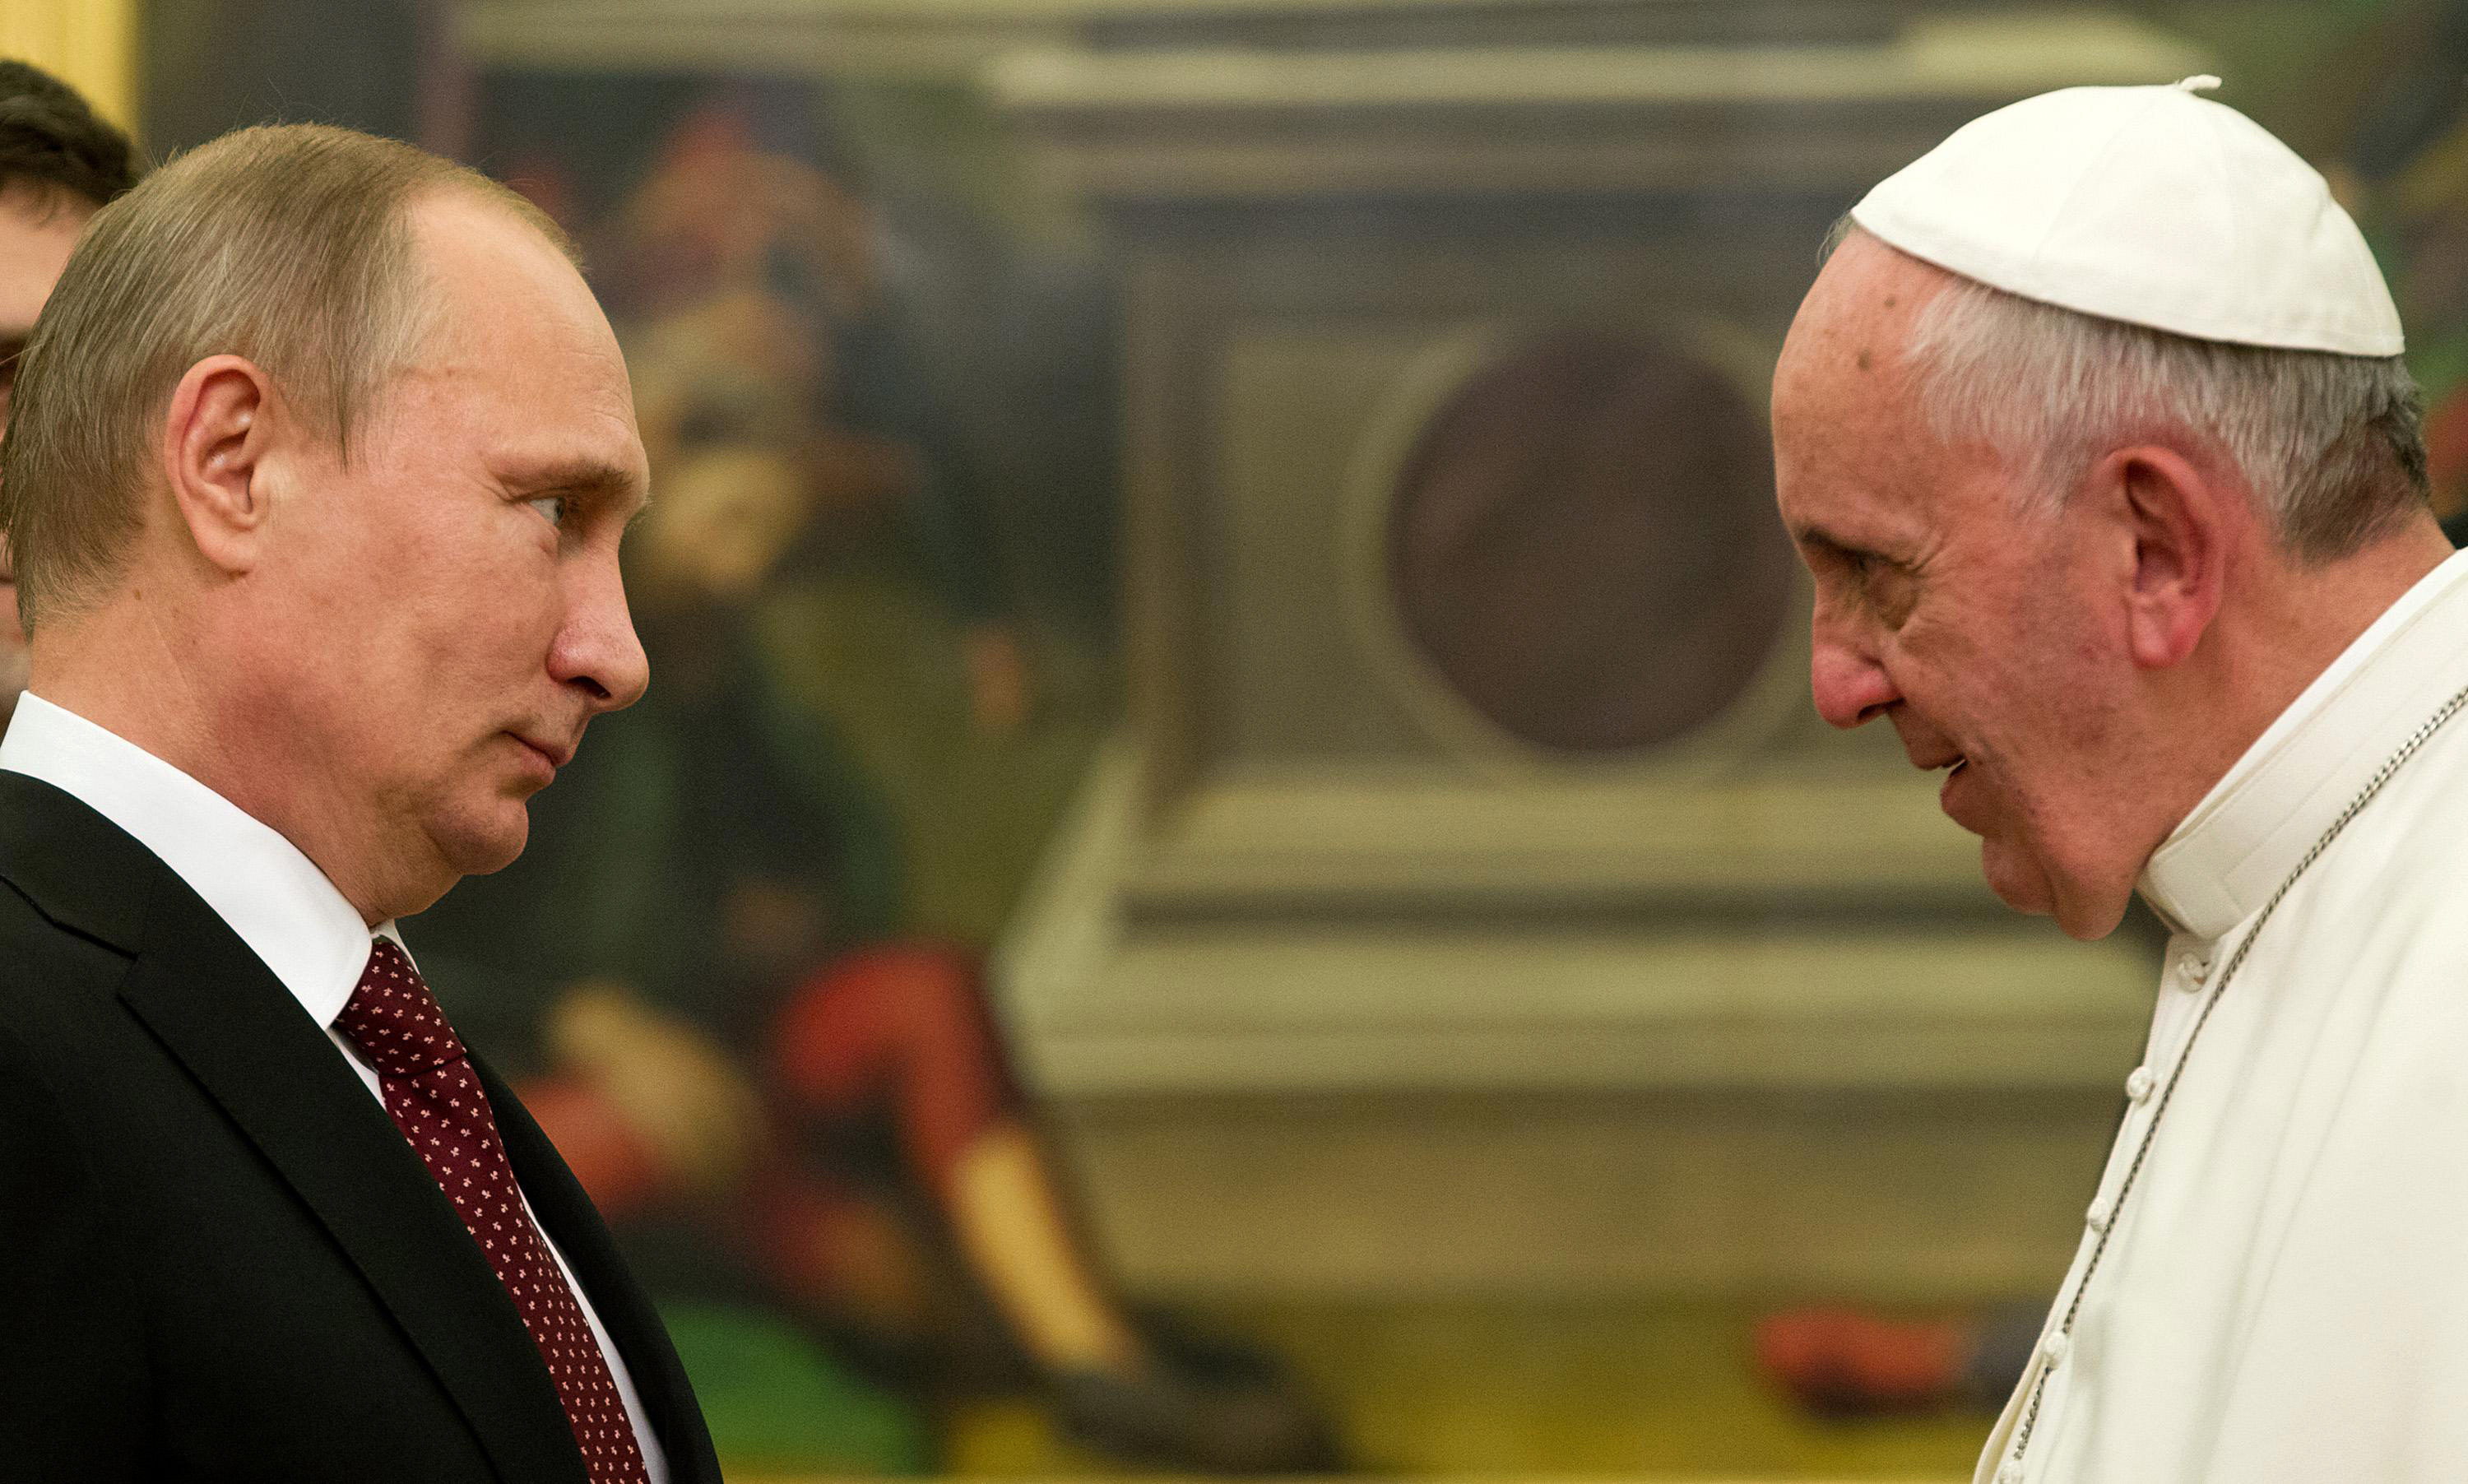 Pope Francis speaks to Russian President Vladimir Putin, left, on the occasion of their private audience at the Vatican on Nov. 25, 2013.